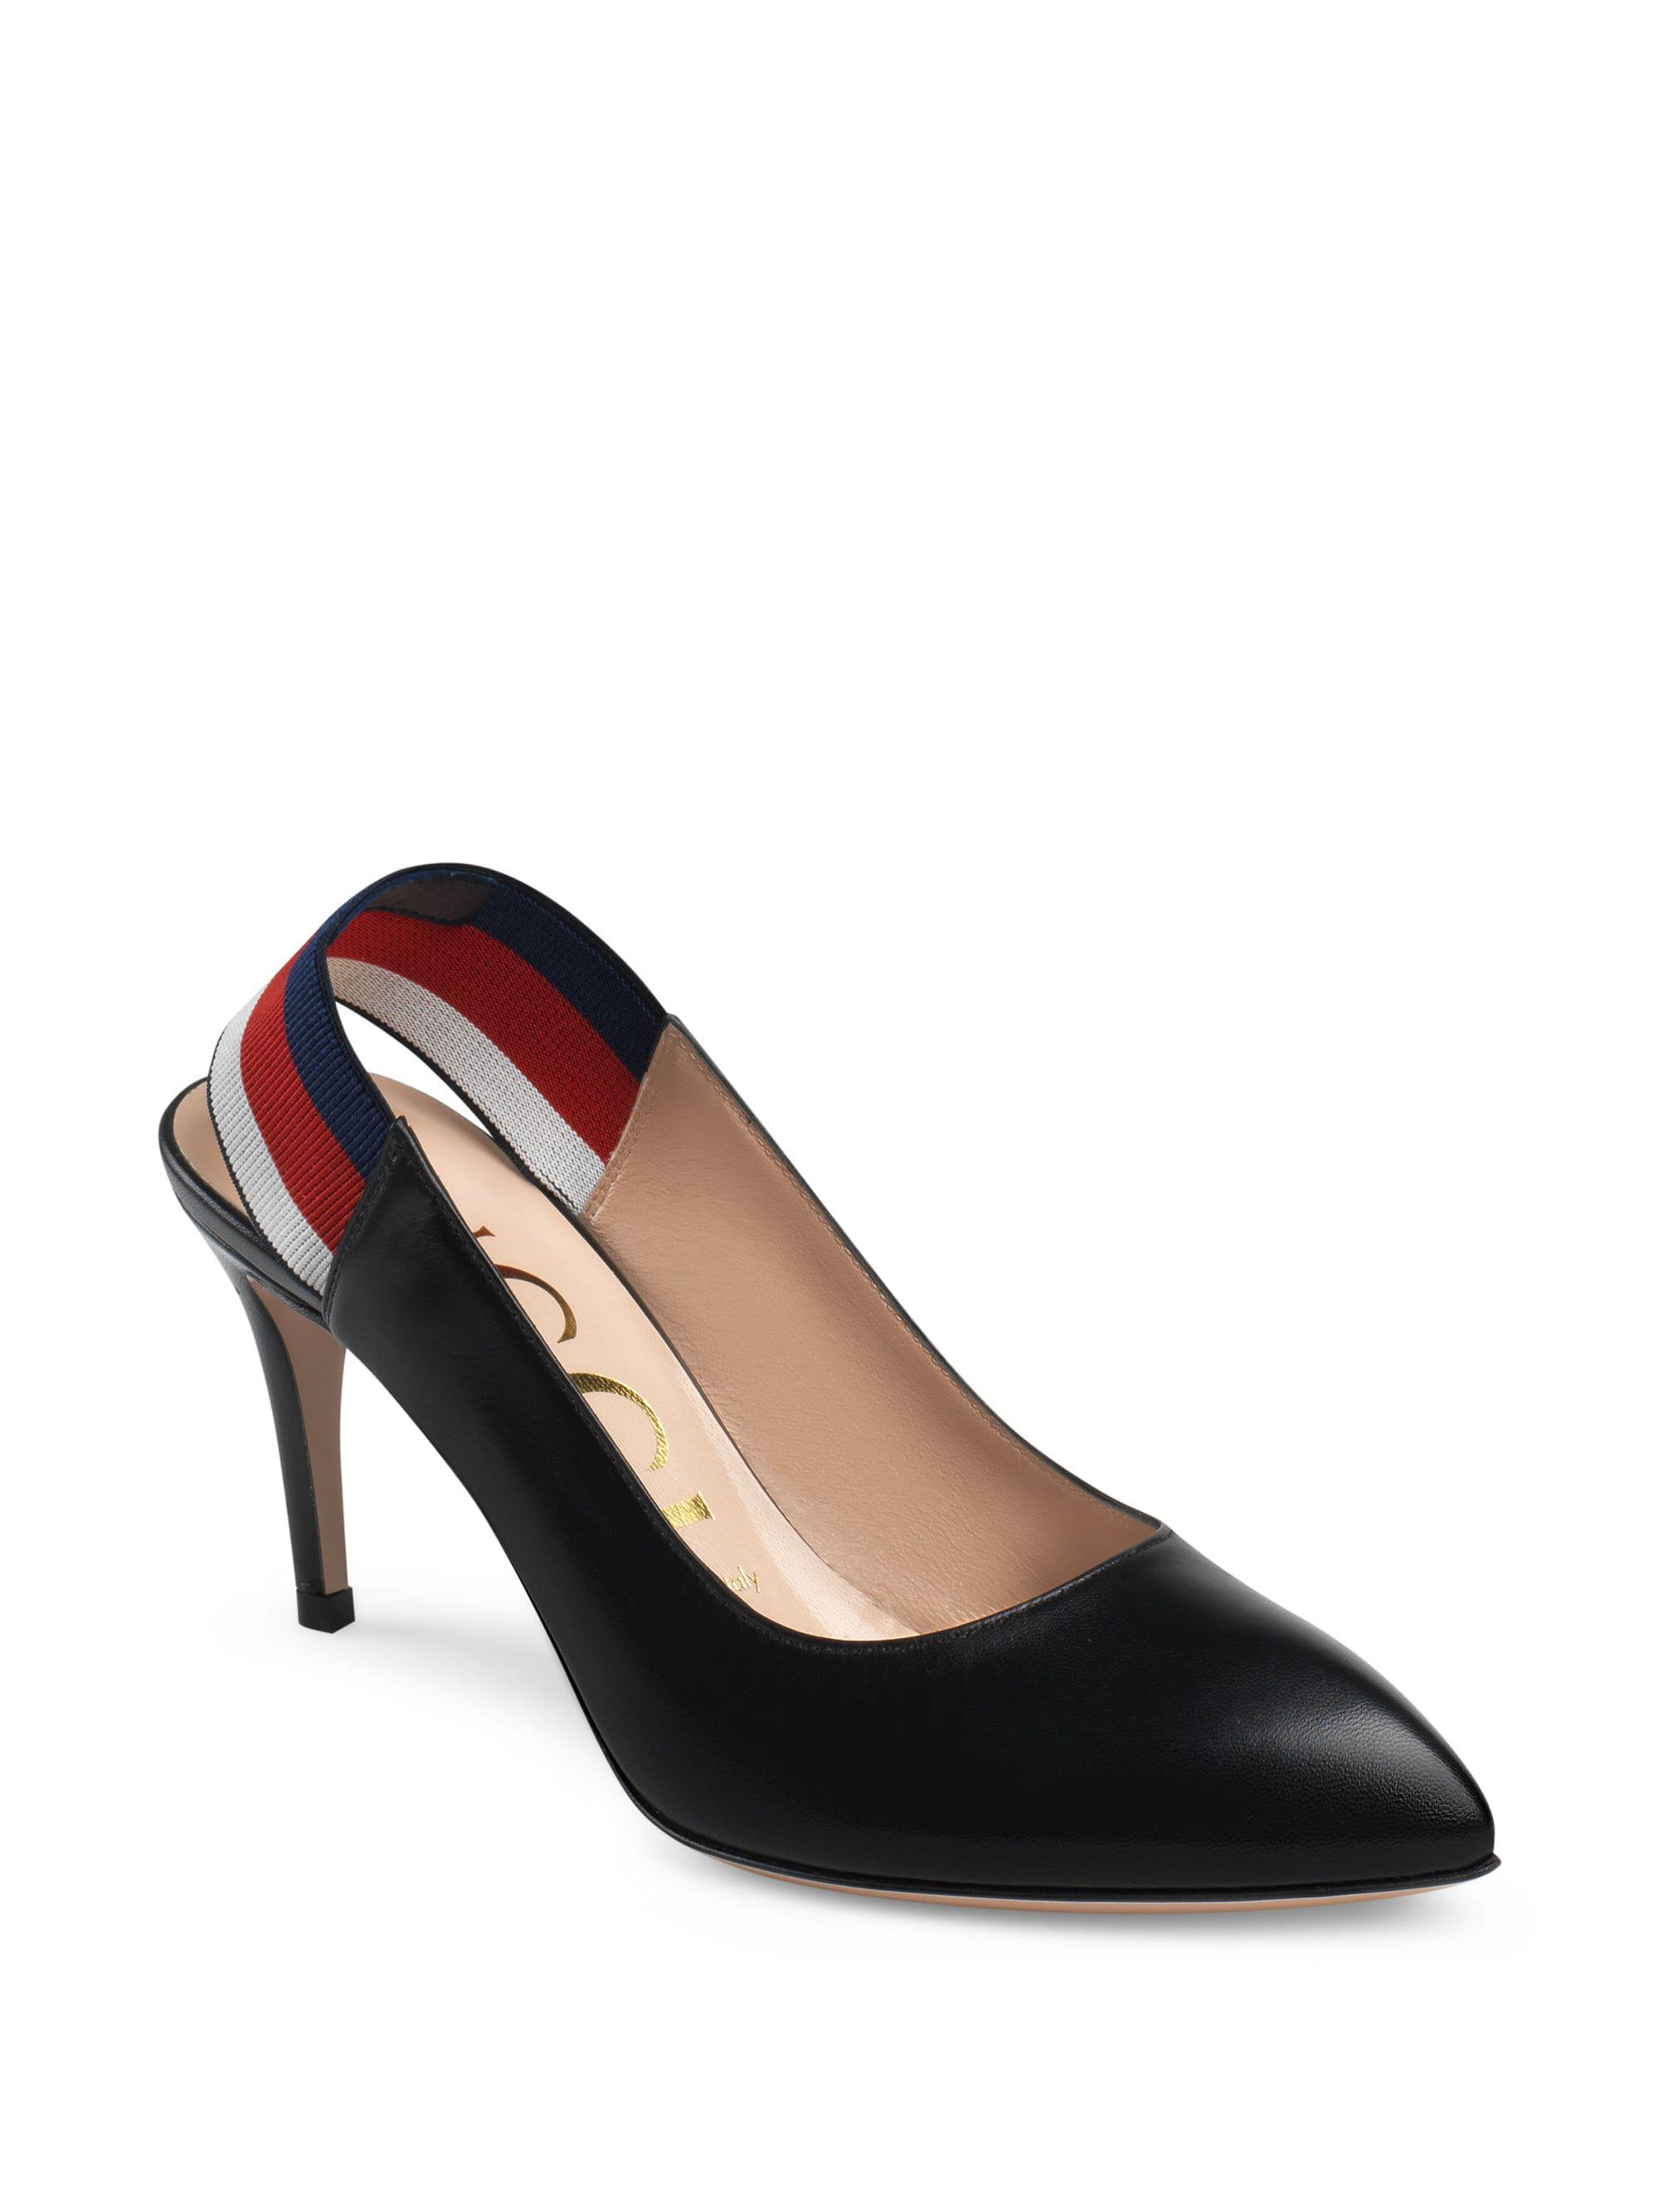 164595ce2d1 Gucci Sylvie Leather Web Slingback Pumps in Black - Lyst